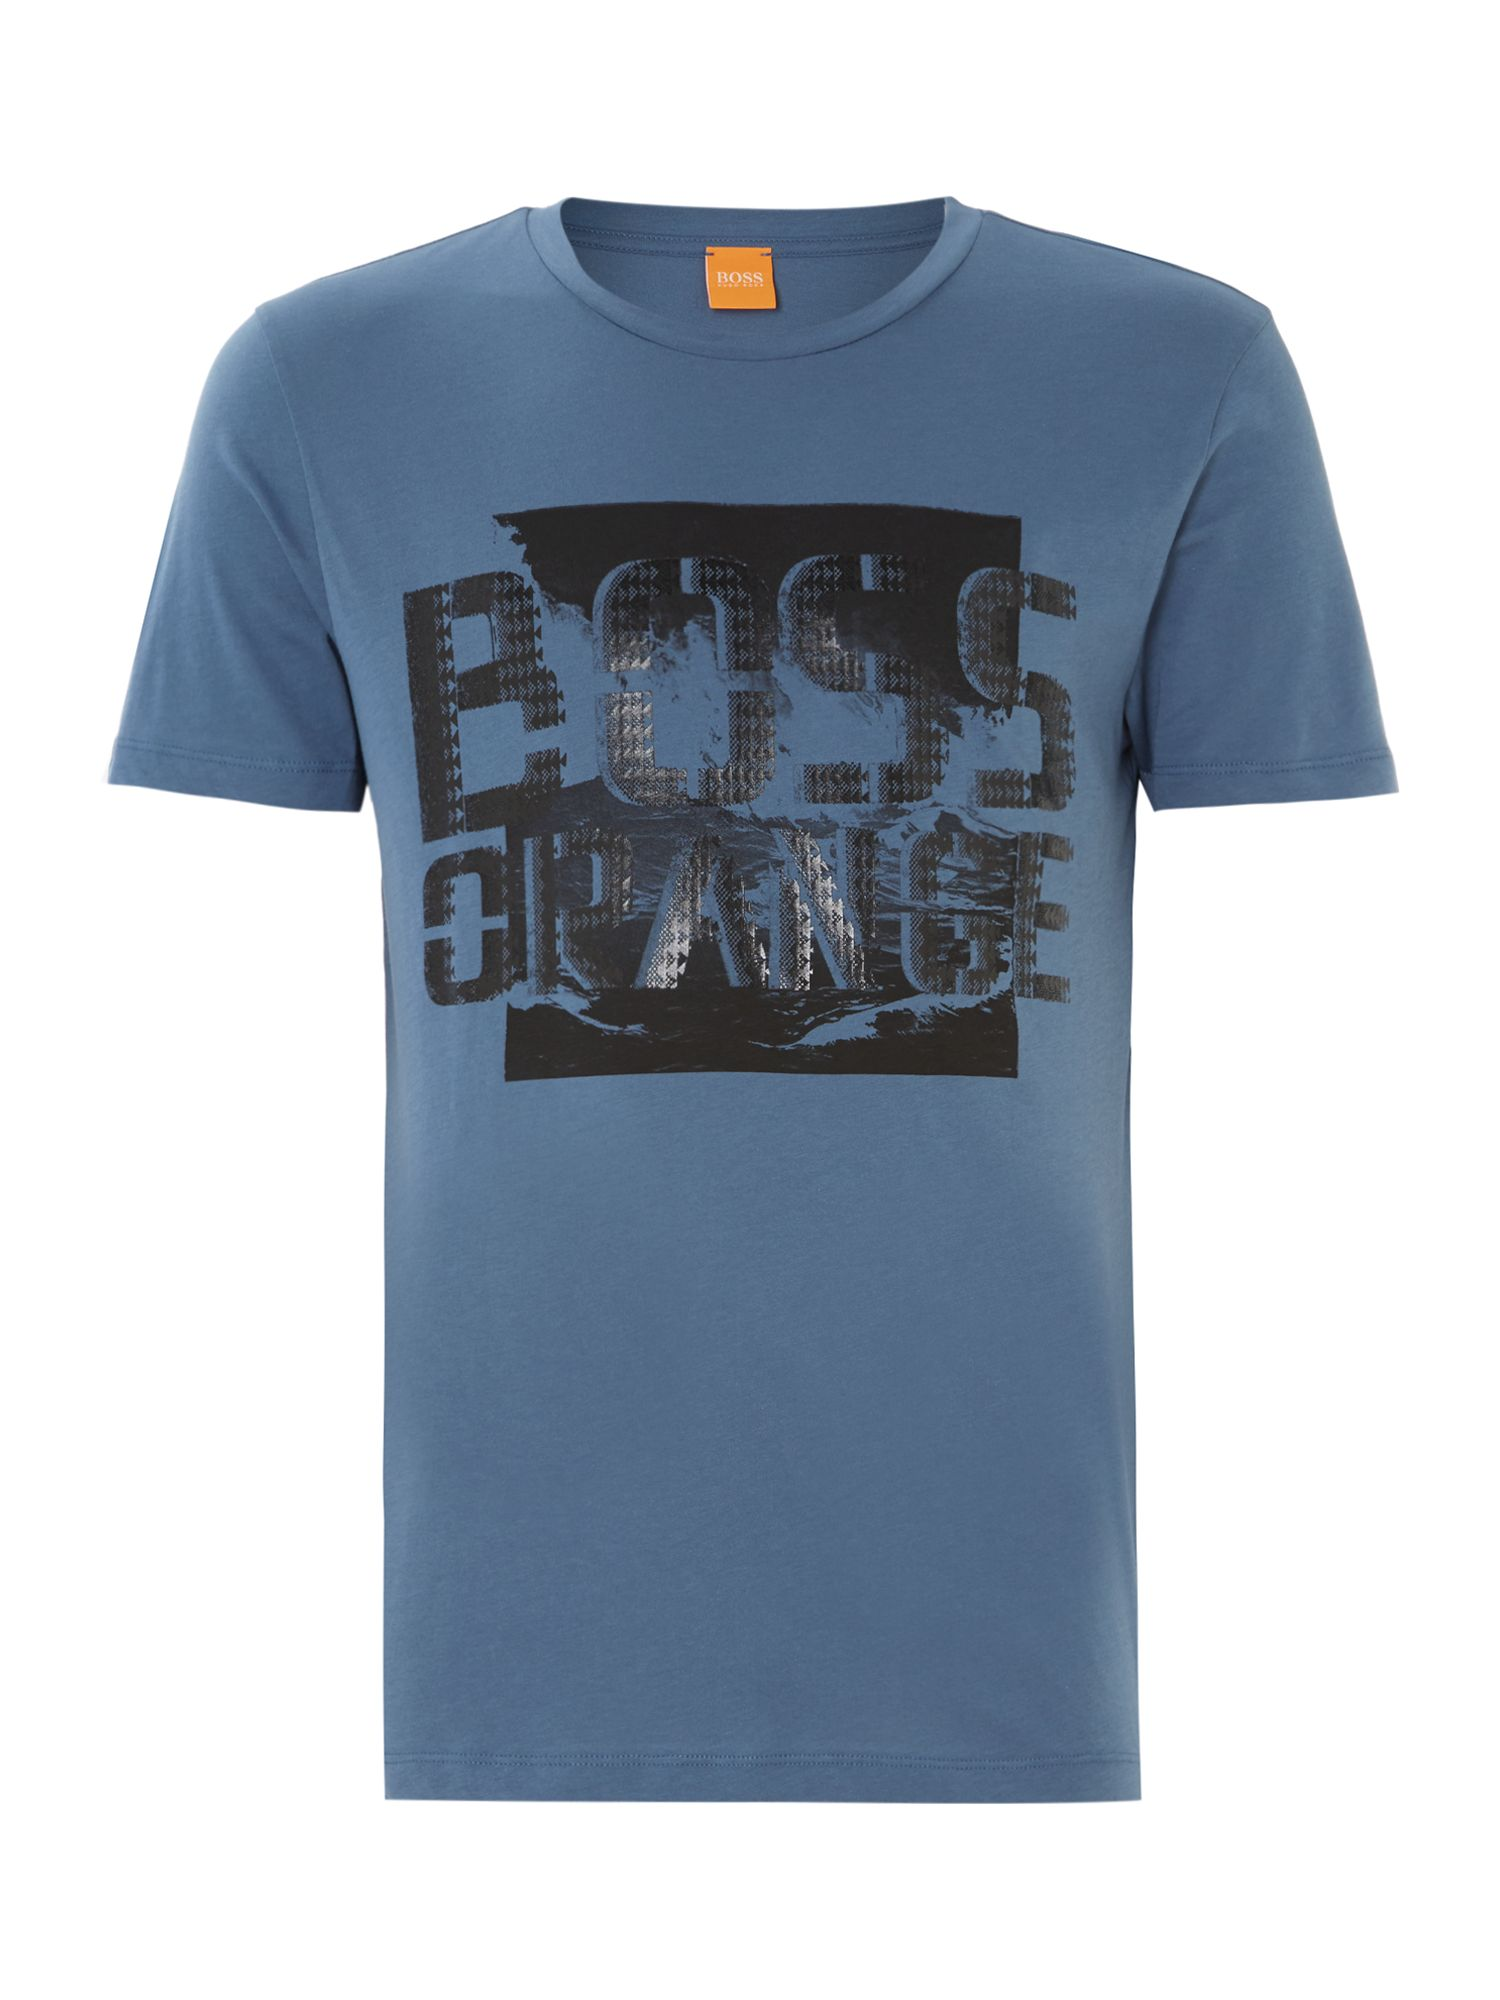 Boss orange logo printed t shirt